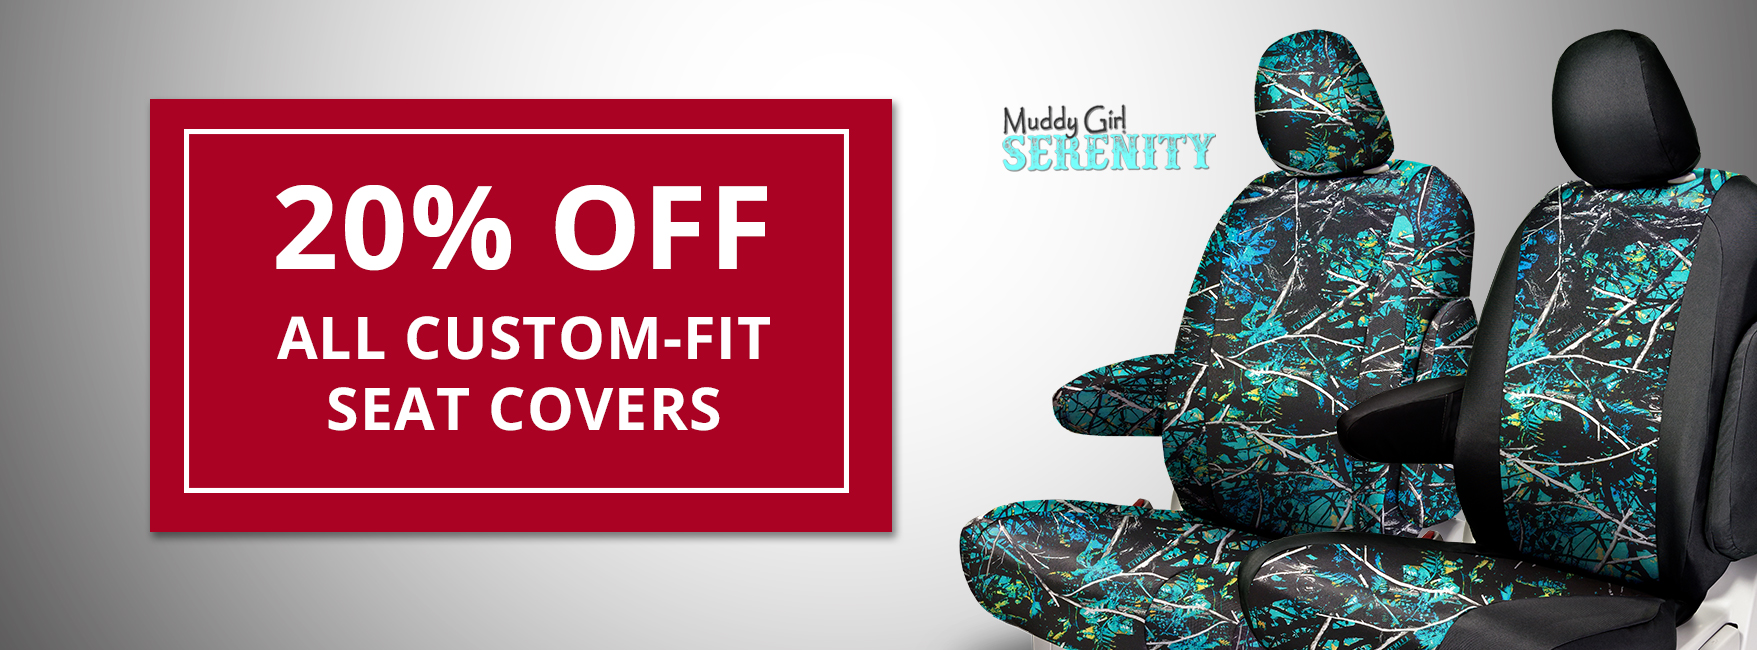 20% off all NW custom-fit seat covers